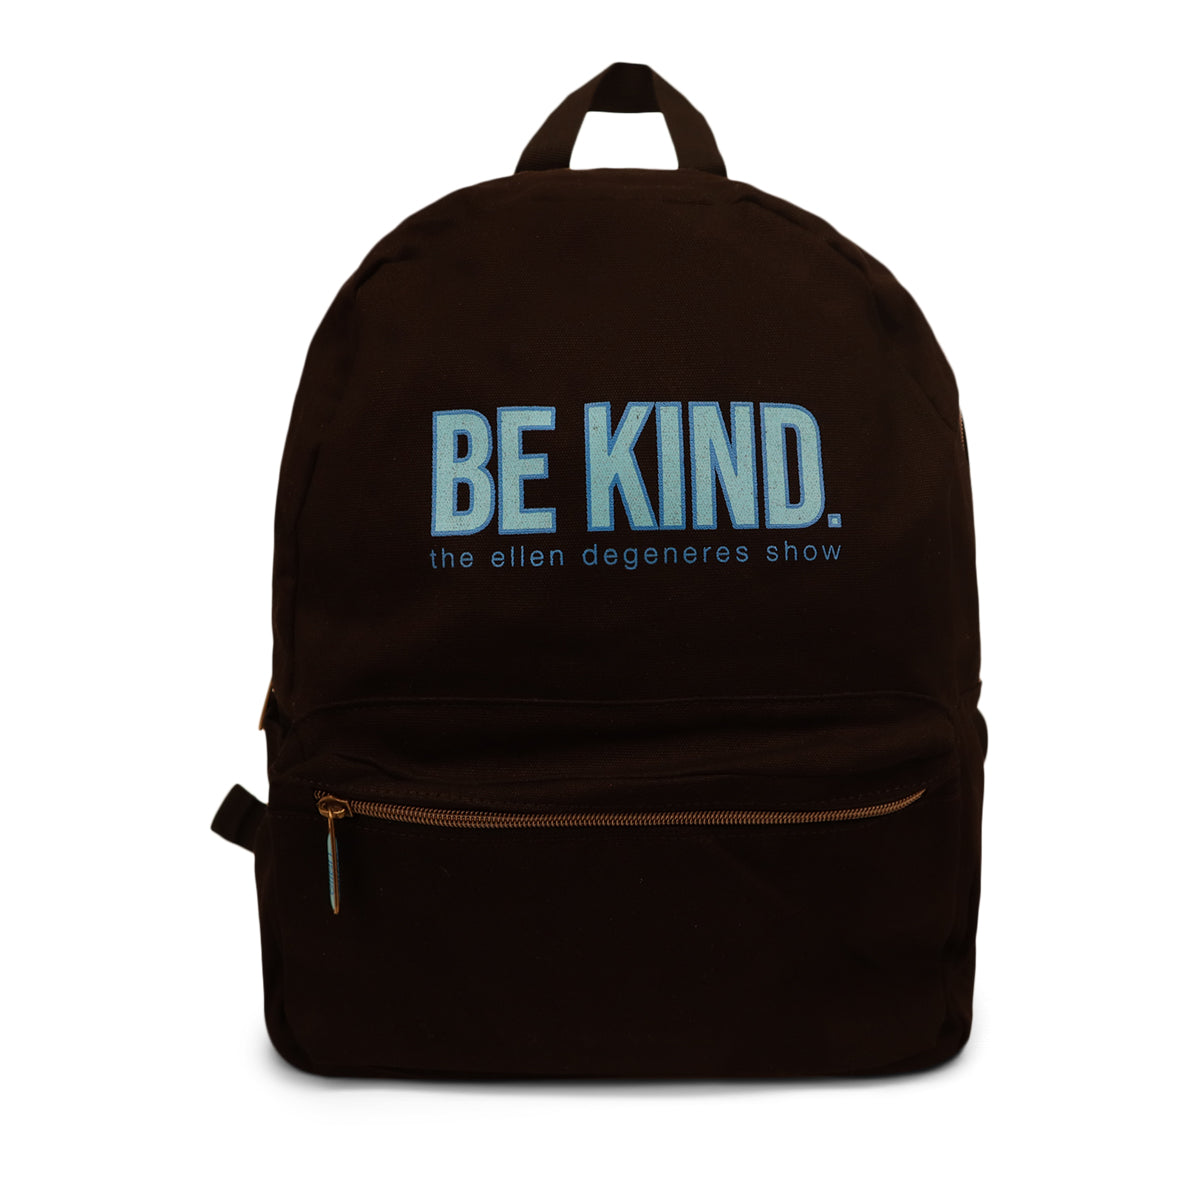 The ellen DeGeneres Show- BE KIND. Canvas Backpack- Black- Front